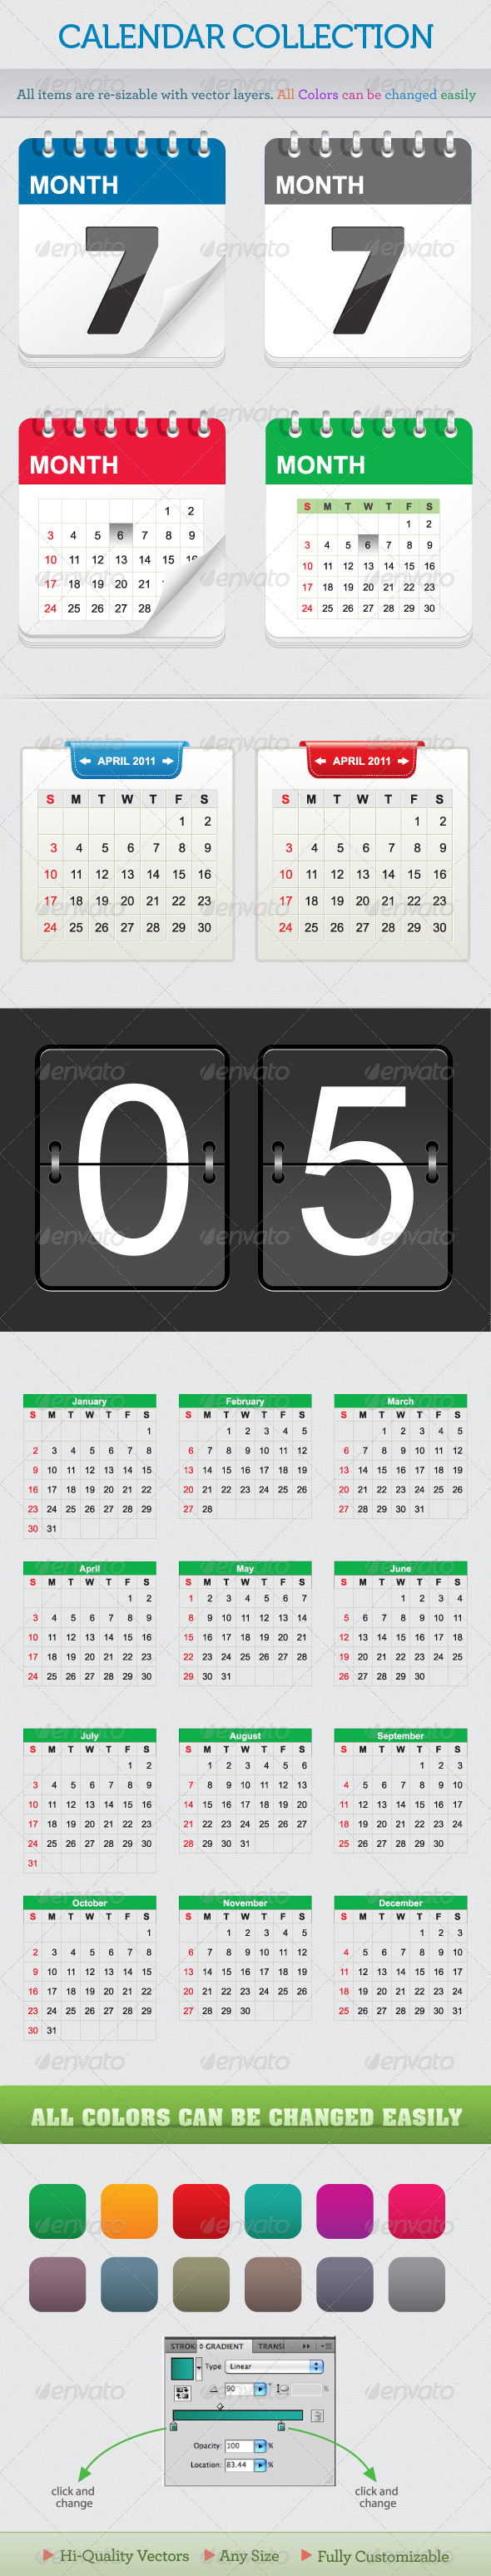 Calendar Collection - Web Elements Vectors